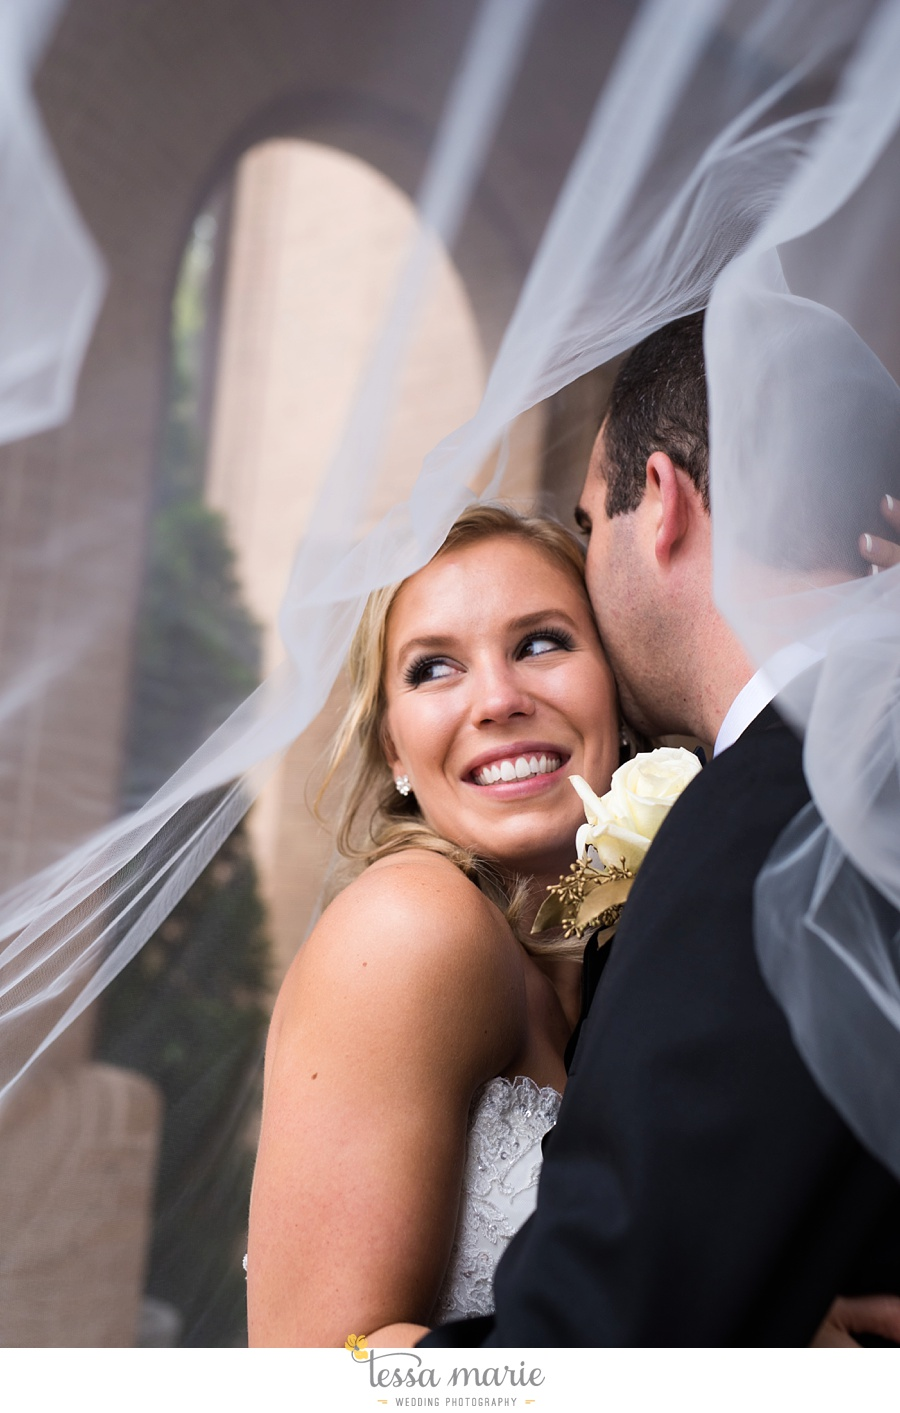 ventanas_wedding_pictures_tessa_marie_weddings_rainy_wedding_day_pictures_atlanta_skyline_wedding_0065